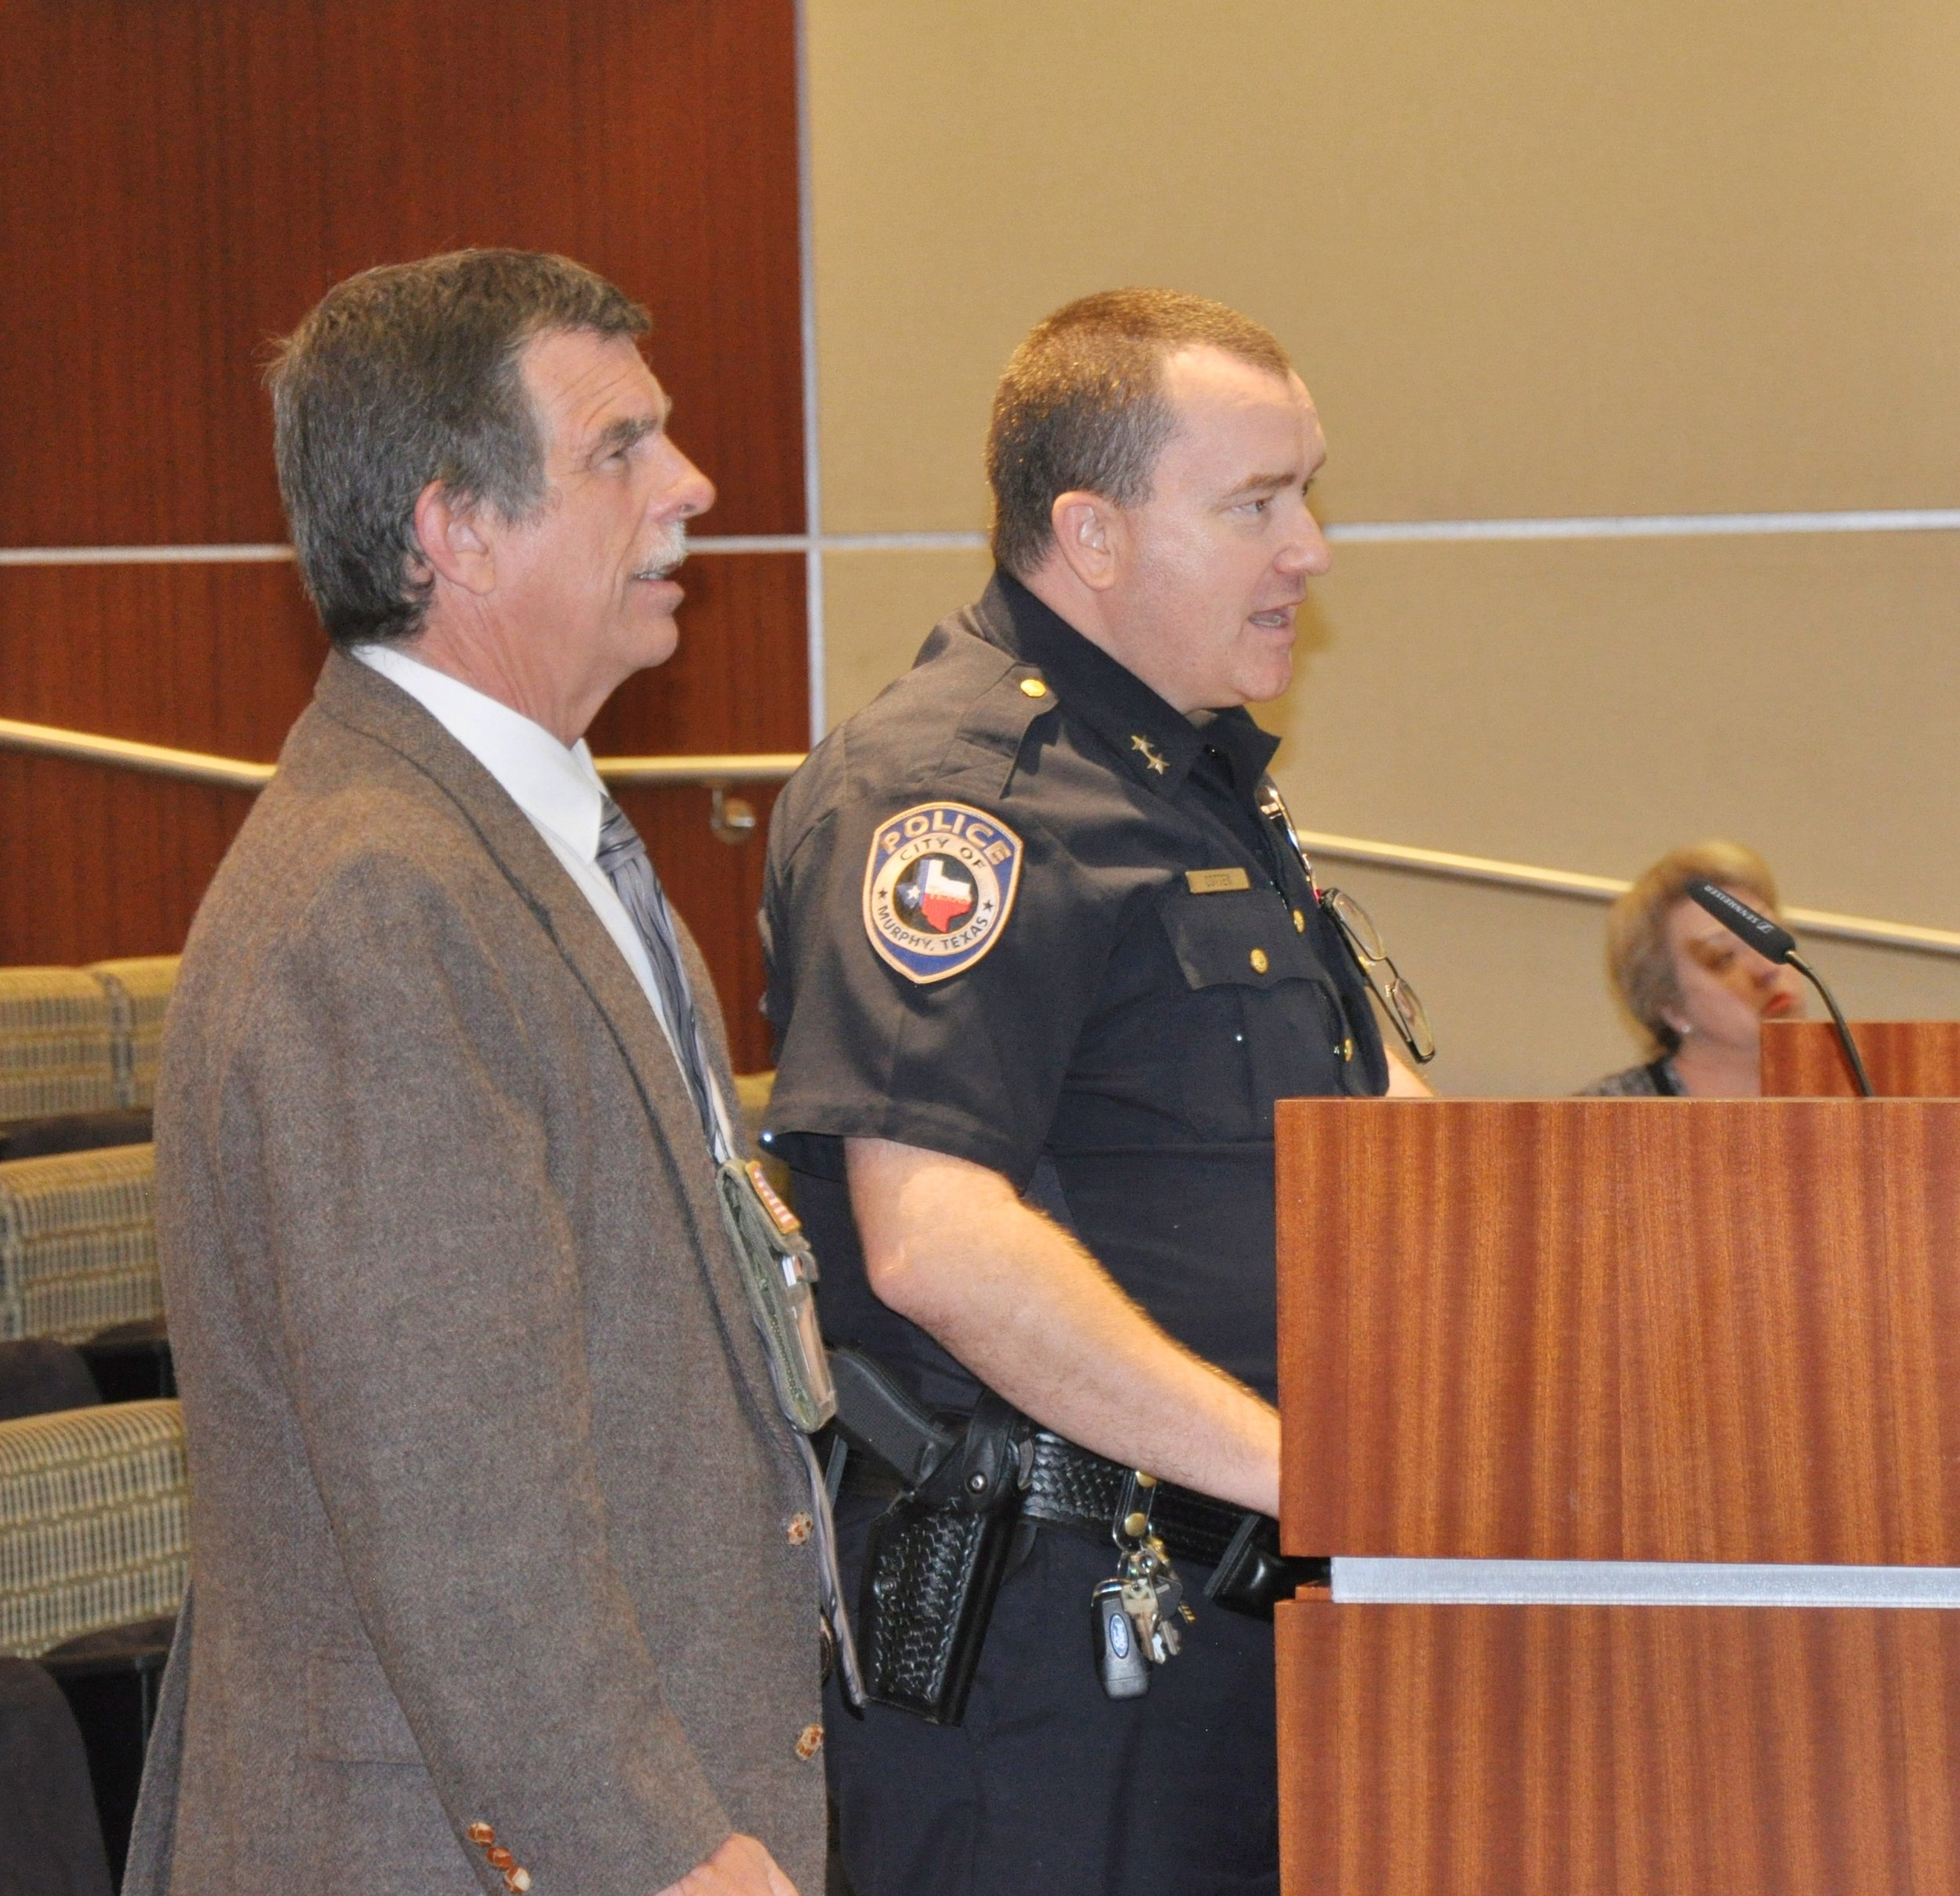 Police Chief Cotten discusses the success of the new right turn lane.